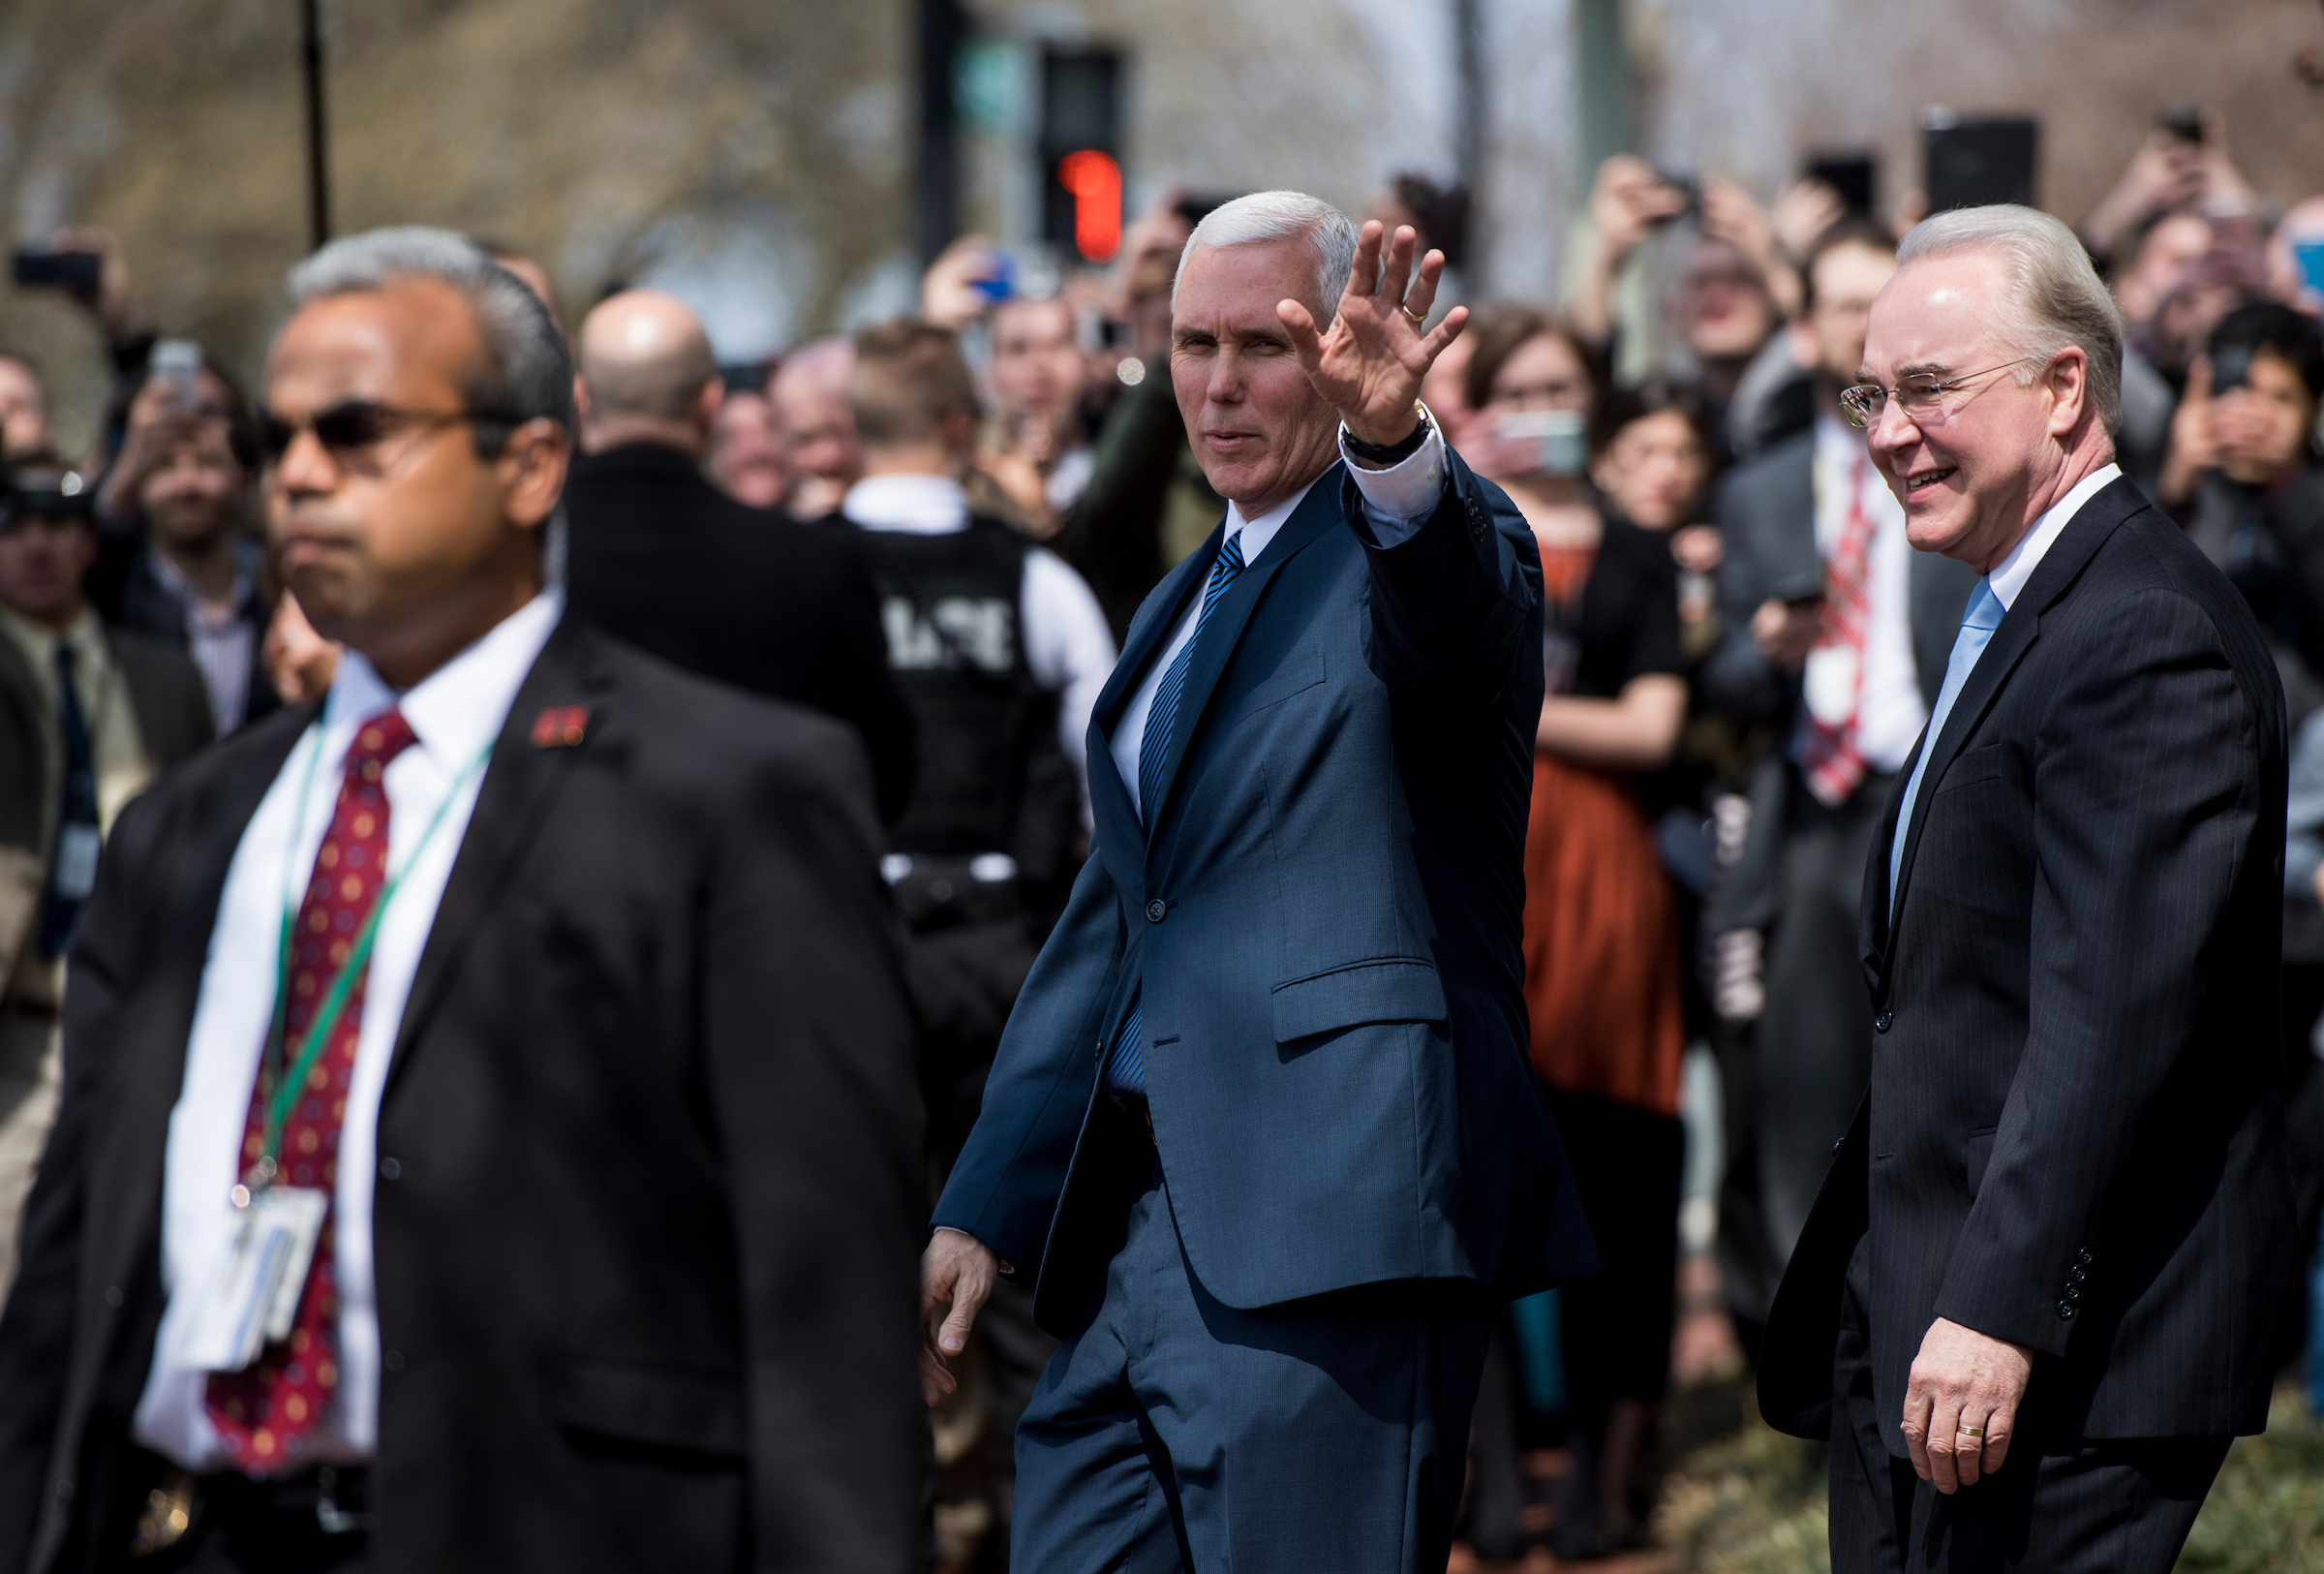 UNITED STATES - MARCH 24: Vice President Mike Pence and Health and Human Services Secretary Tom Price leave their meeting with members of the House Freedom Caucus at the Capitol Hill Club before the final vote on the American Health Care Act of 2017 on Friday, March 24, 2017. (Photo By Bill Clark/CQ Roll Call)